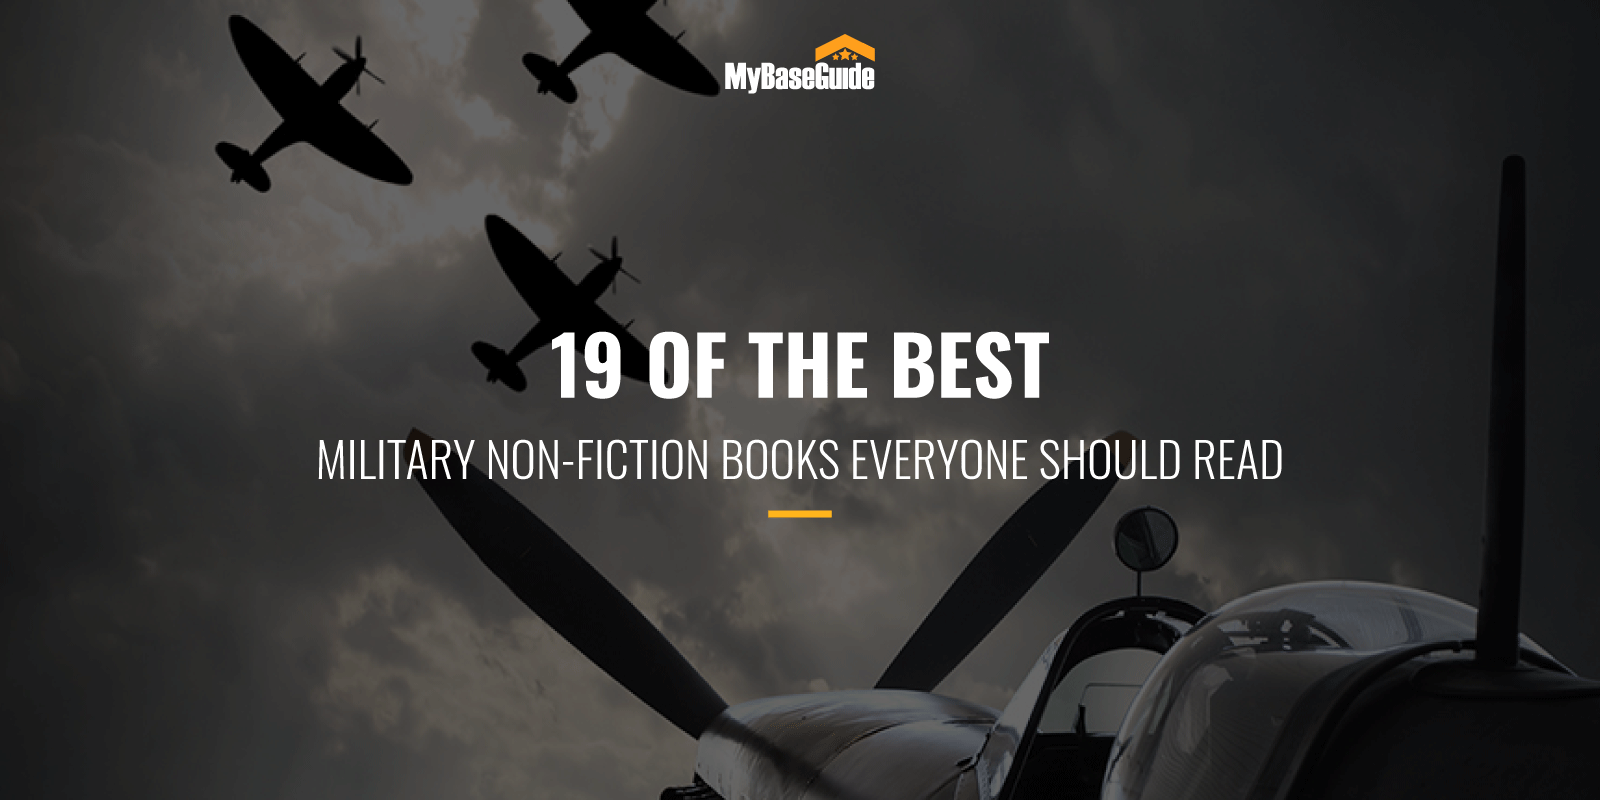 19 of the Best Military Non-Fiction Books Everyone Should Read